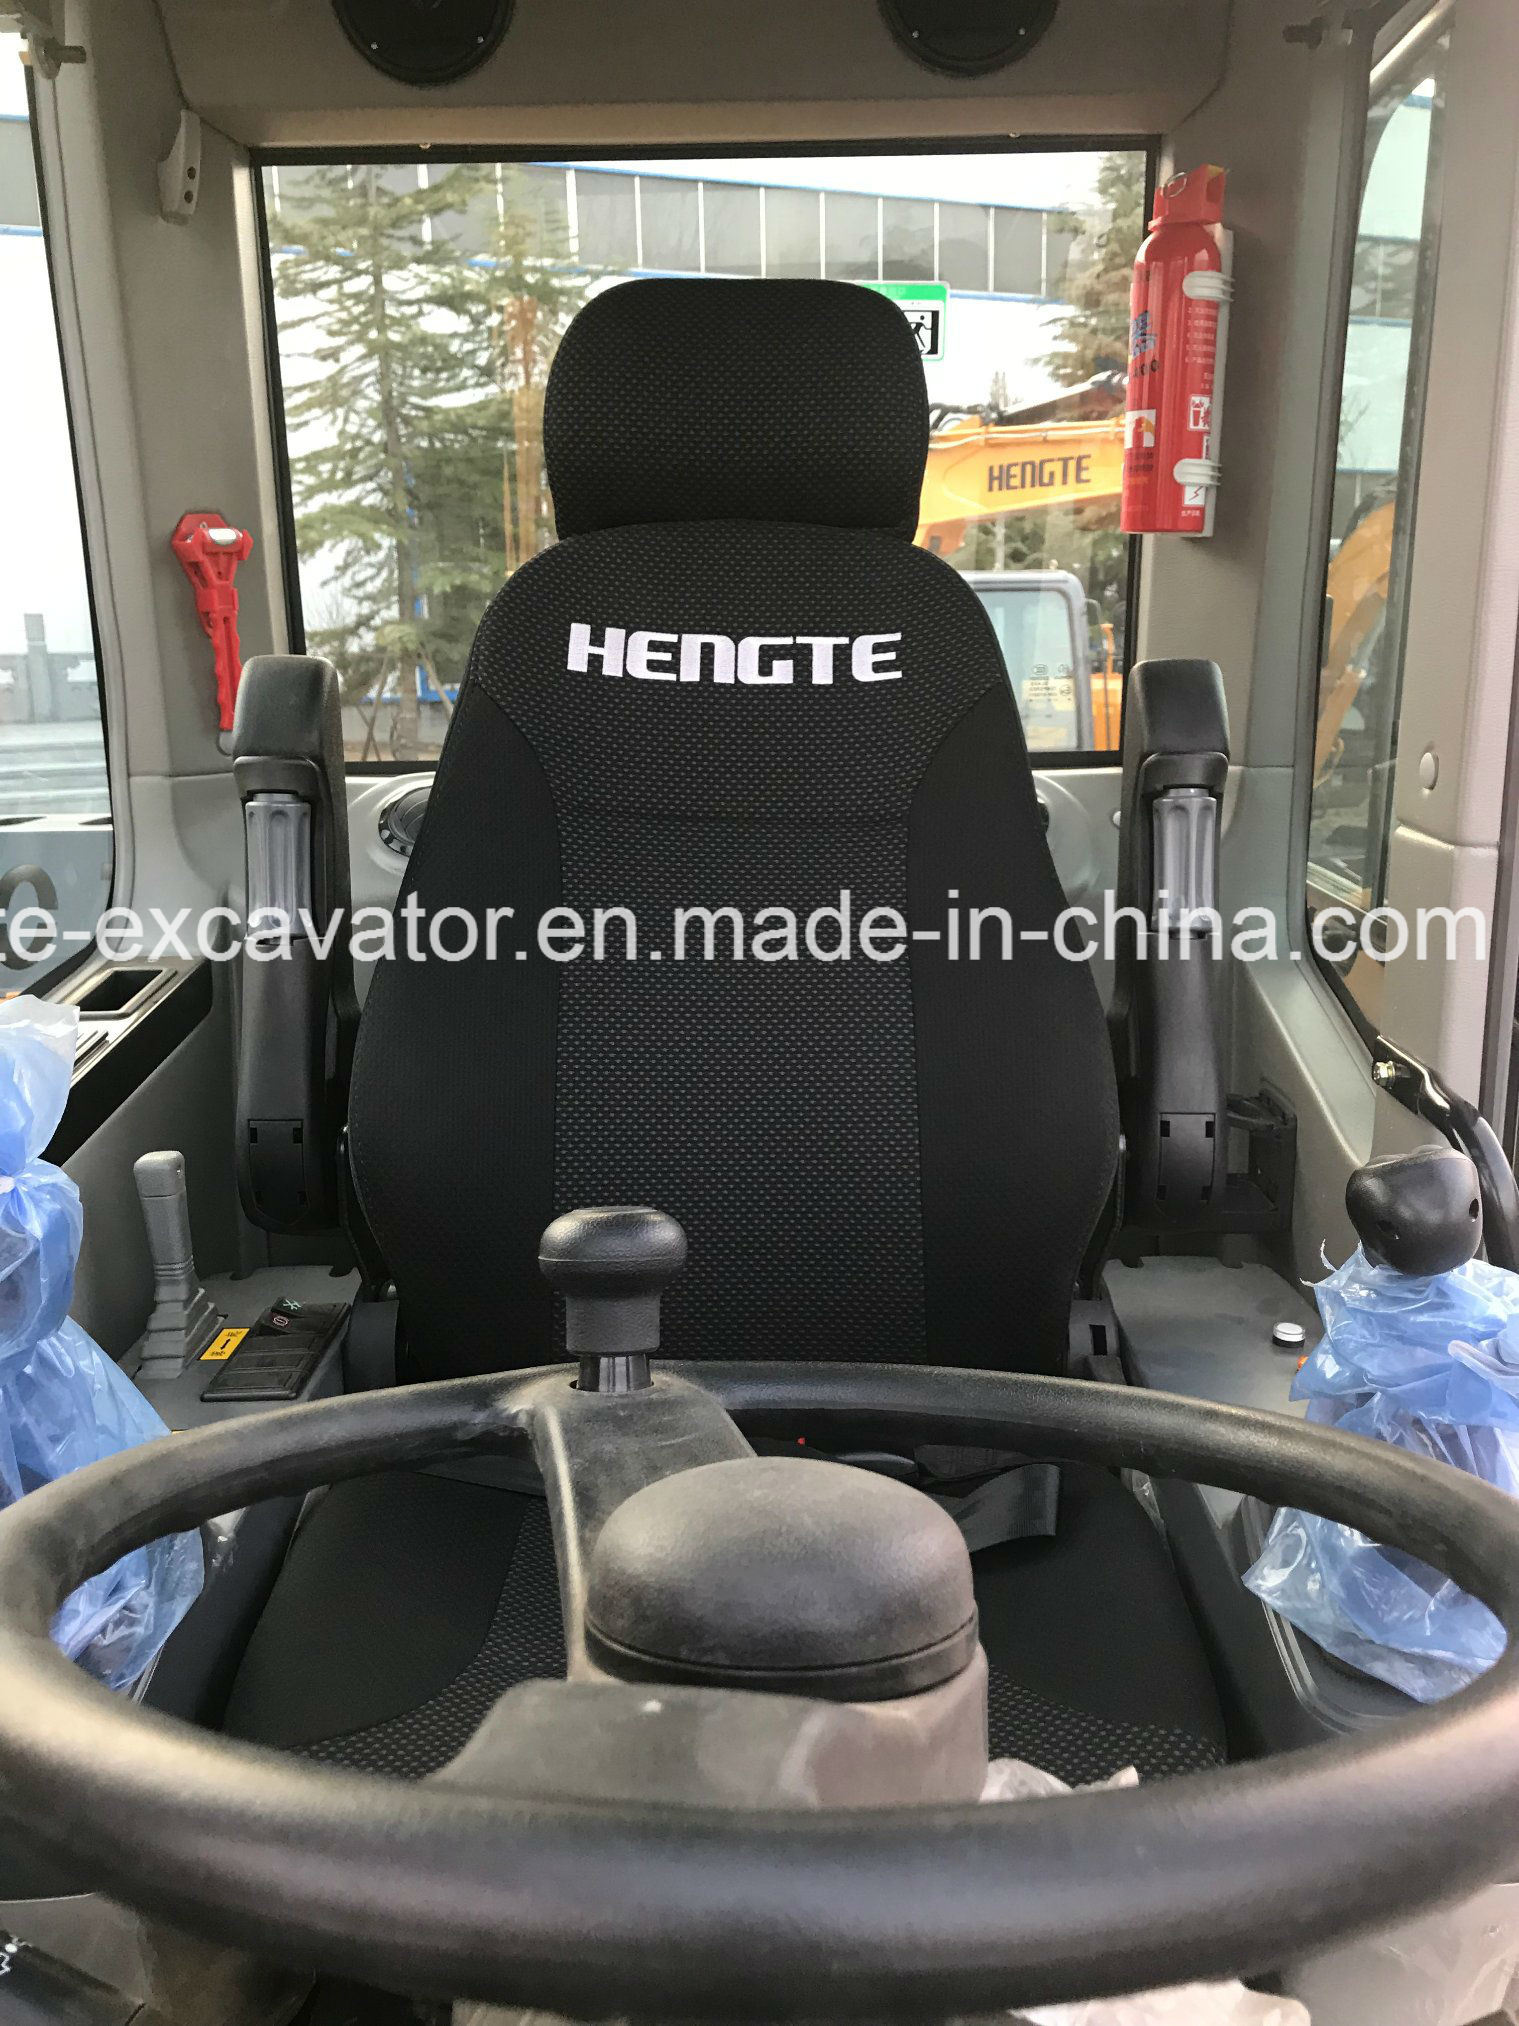 Wheeled Excavator Ht75W pictures & photos